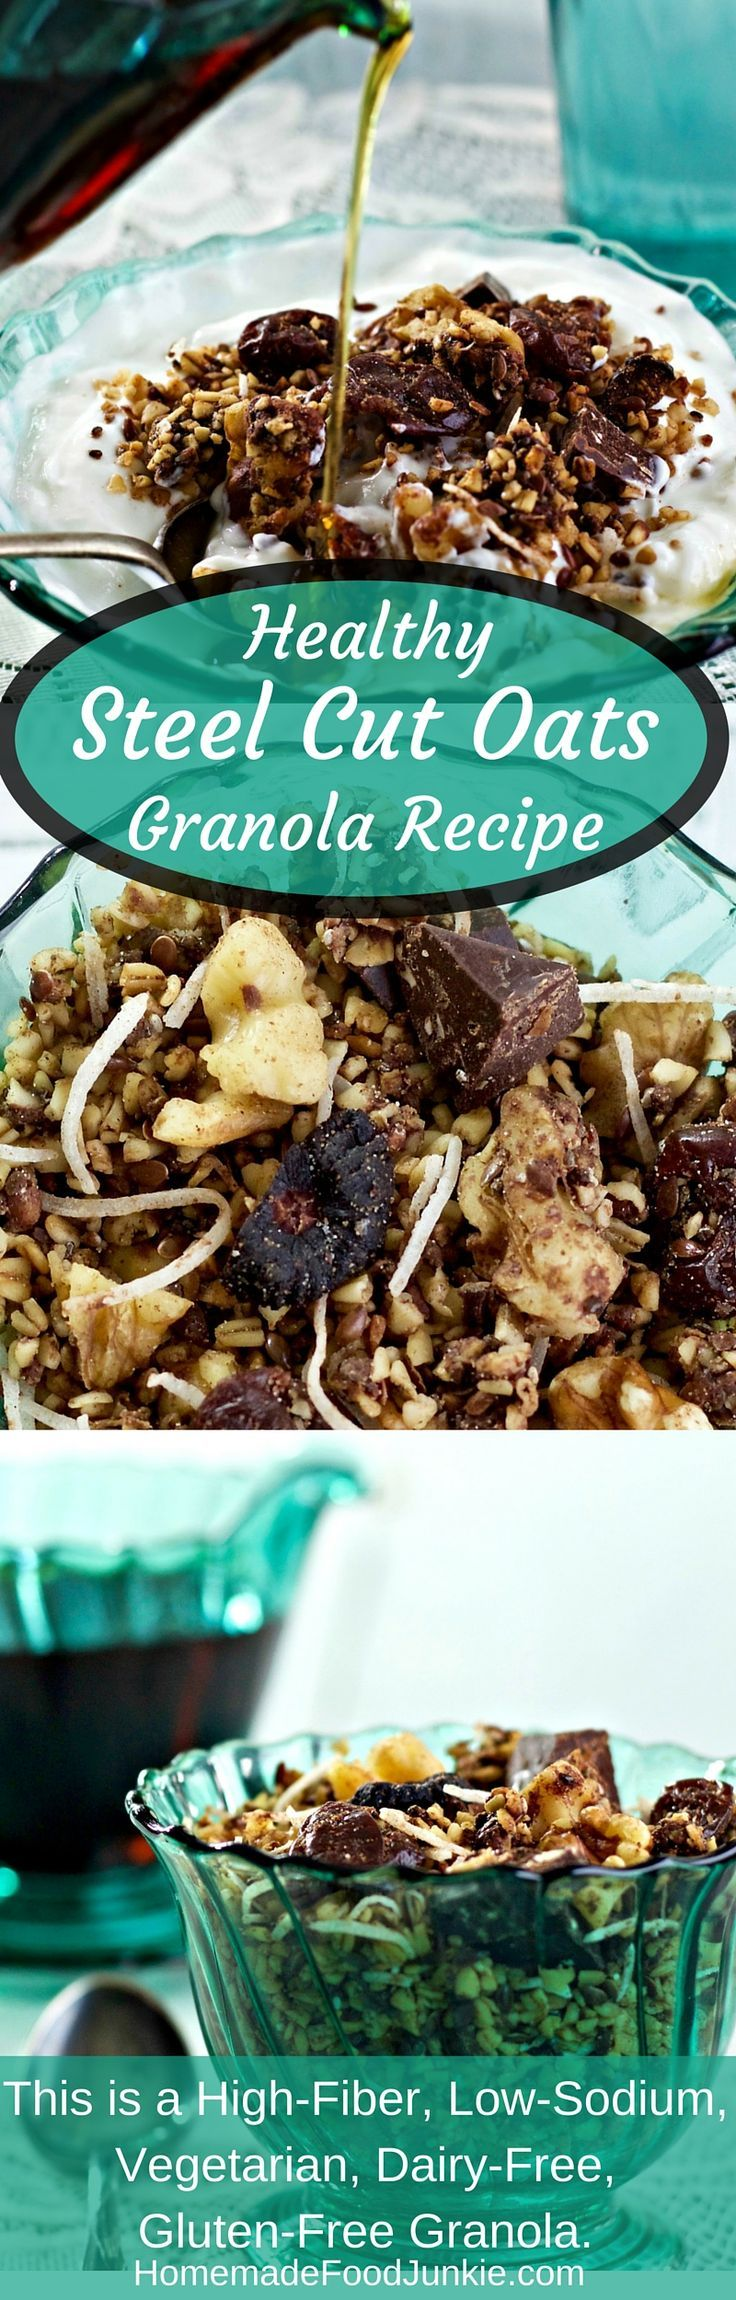 Healthy Steel Cut Oats Granola Recipe is a nutritionally balanced, chewy textured granola. I added dark chocolate chunks, dried figs, cherries, and coconut flakes. This is a High-Fiber, Low-Sodium, Vegetarian, Dairy-Free, Gluten-Free Granola. http://HomemadeFoodjunkie.com